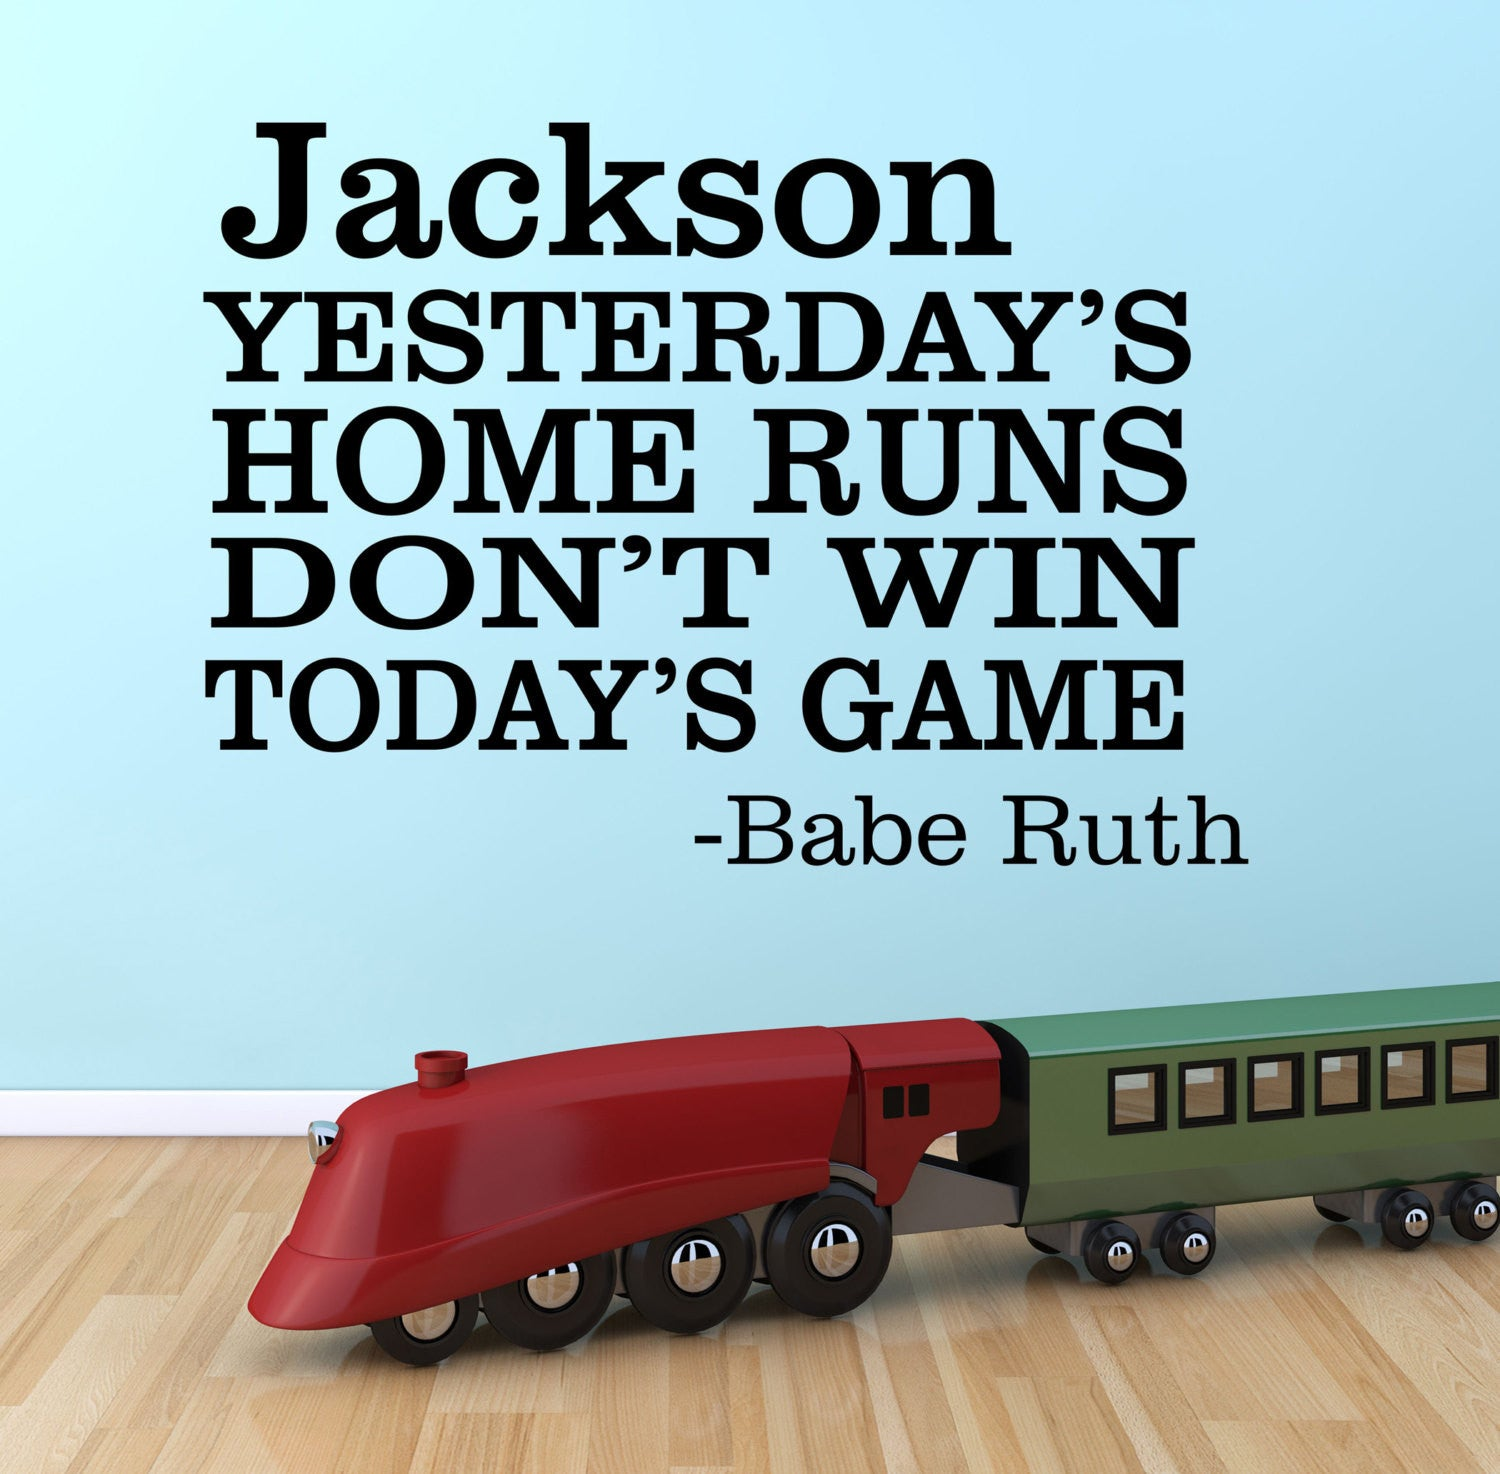 Yesterdayu0027s Home Run Quote   Baseball Wall Decal, Striking Out, Vinyl  Lettering, Boy